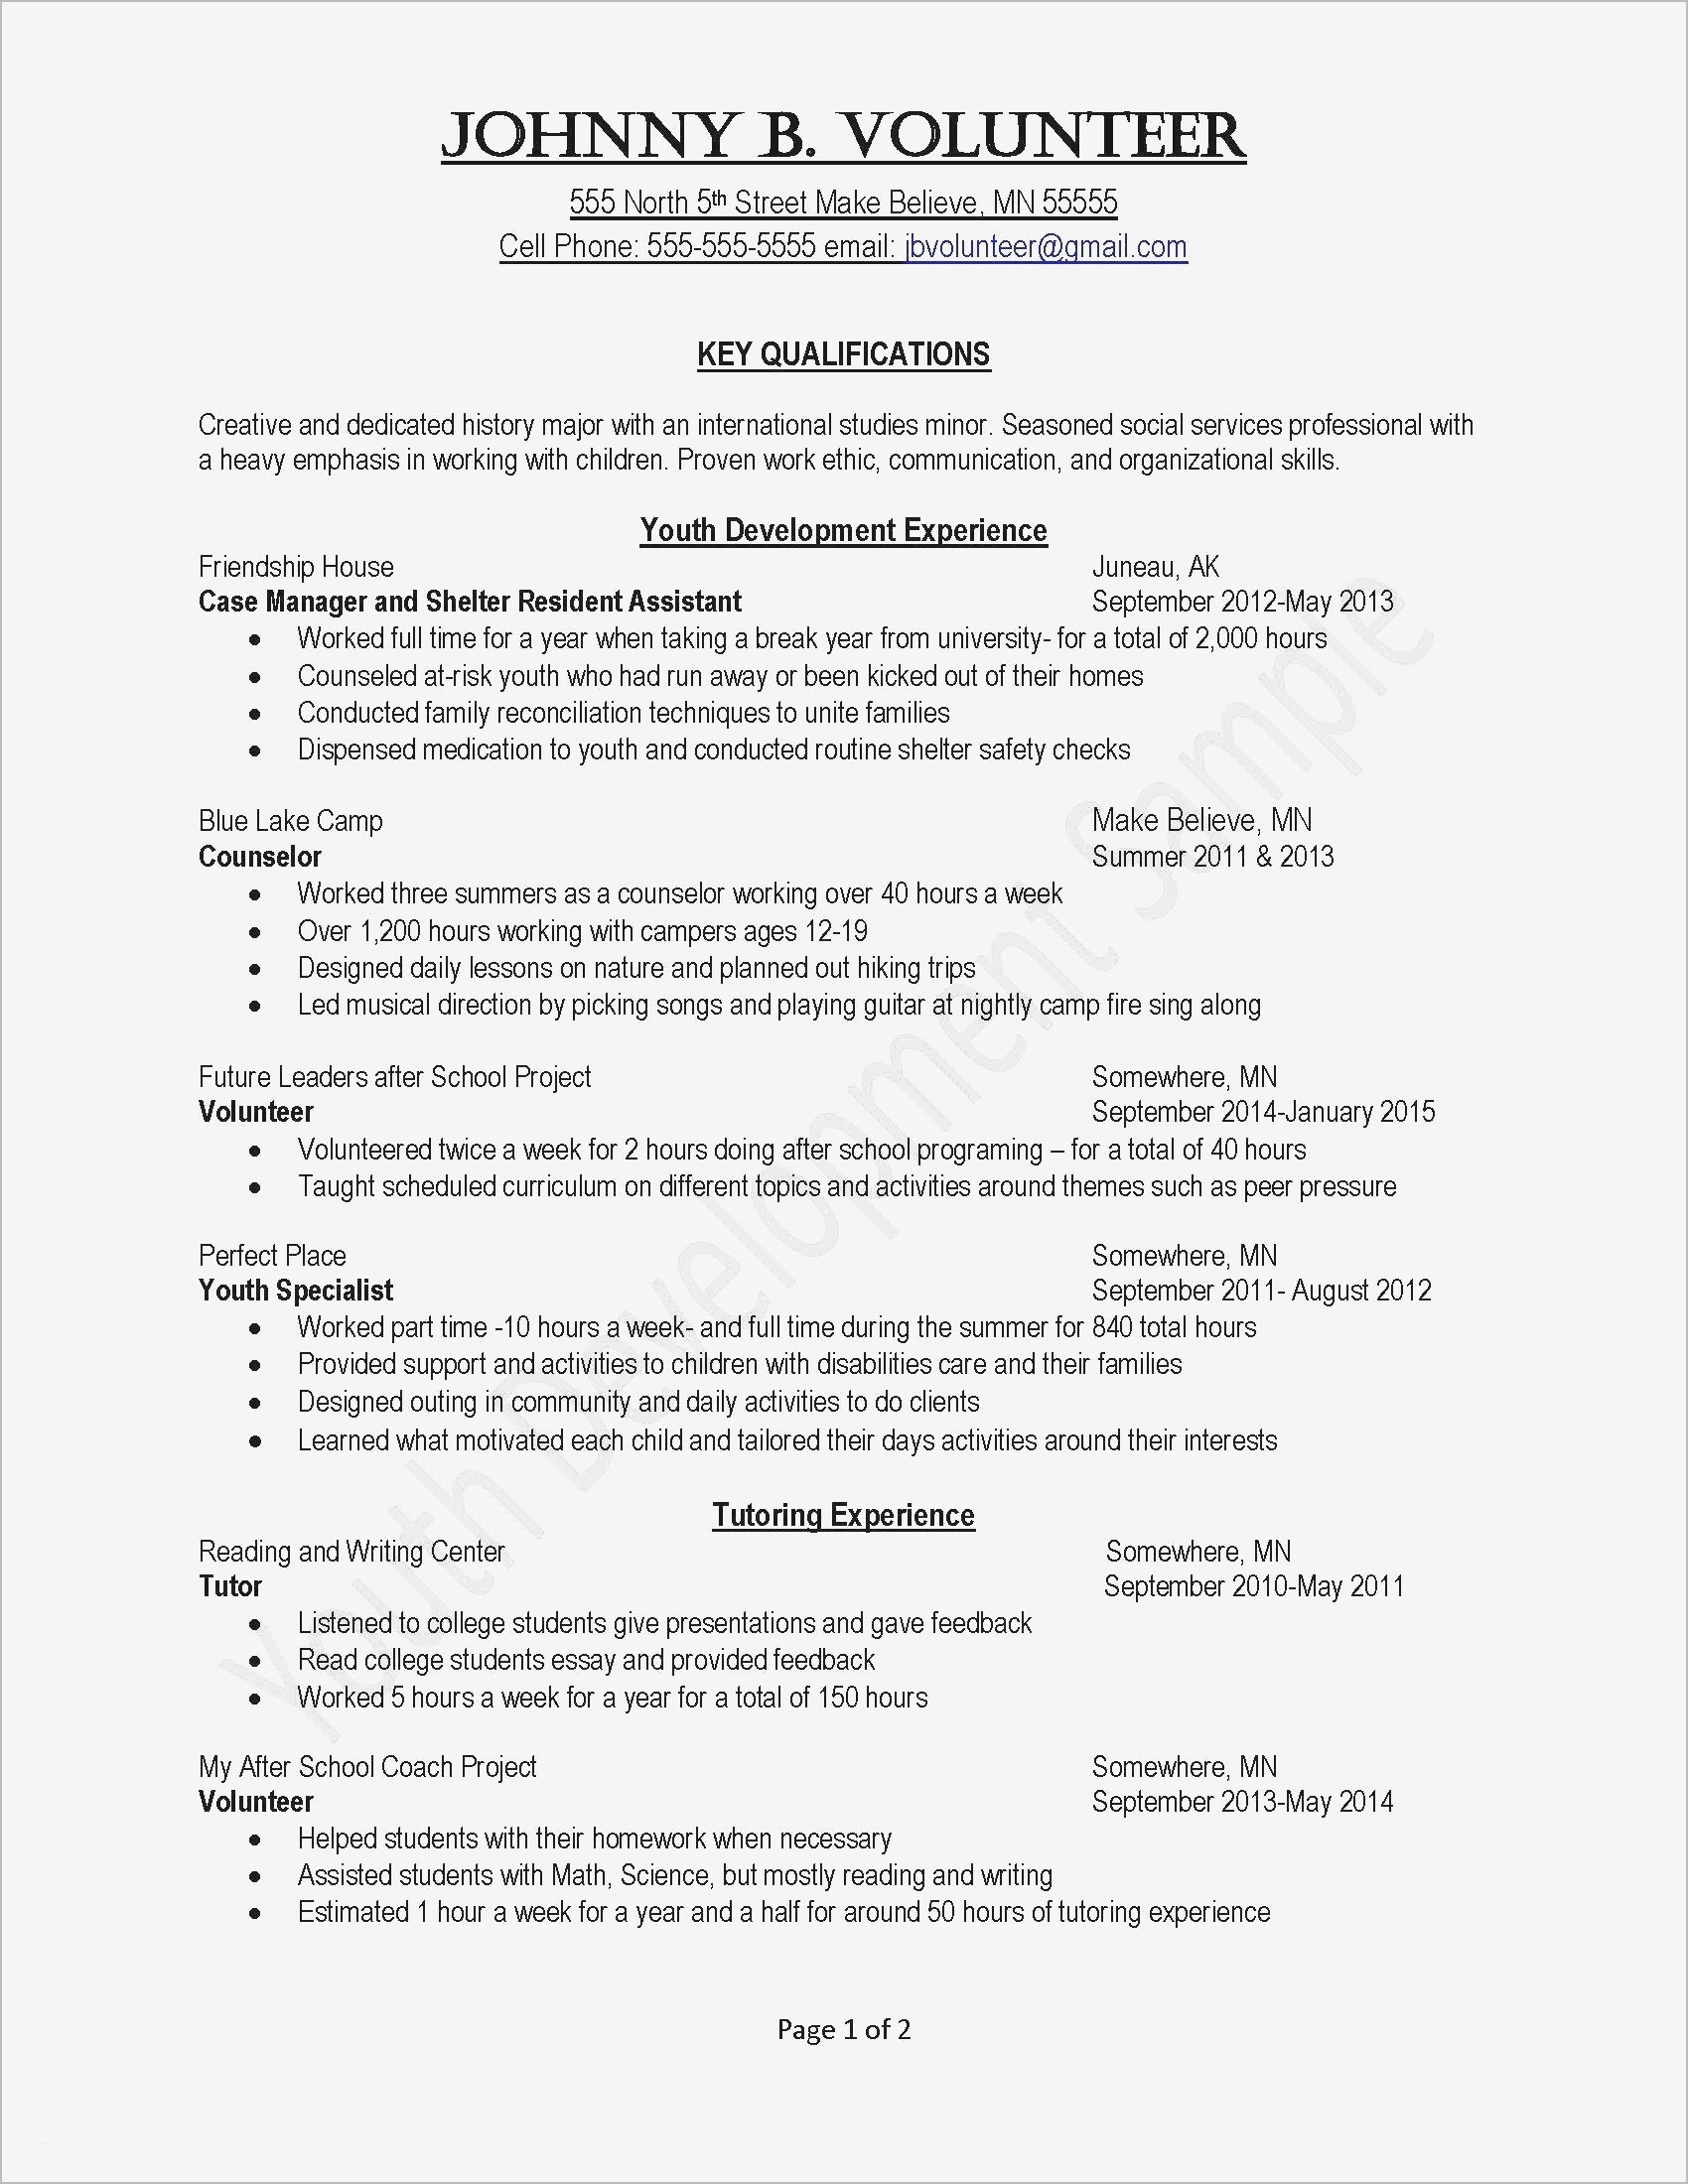 Easy Cover Letter Template Free - Resume Cover Page Template Free Simple Job Fer Letter Template Us